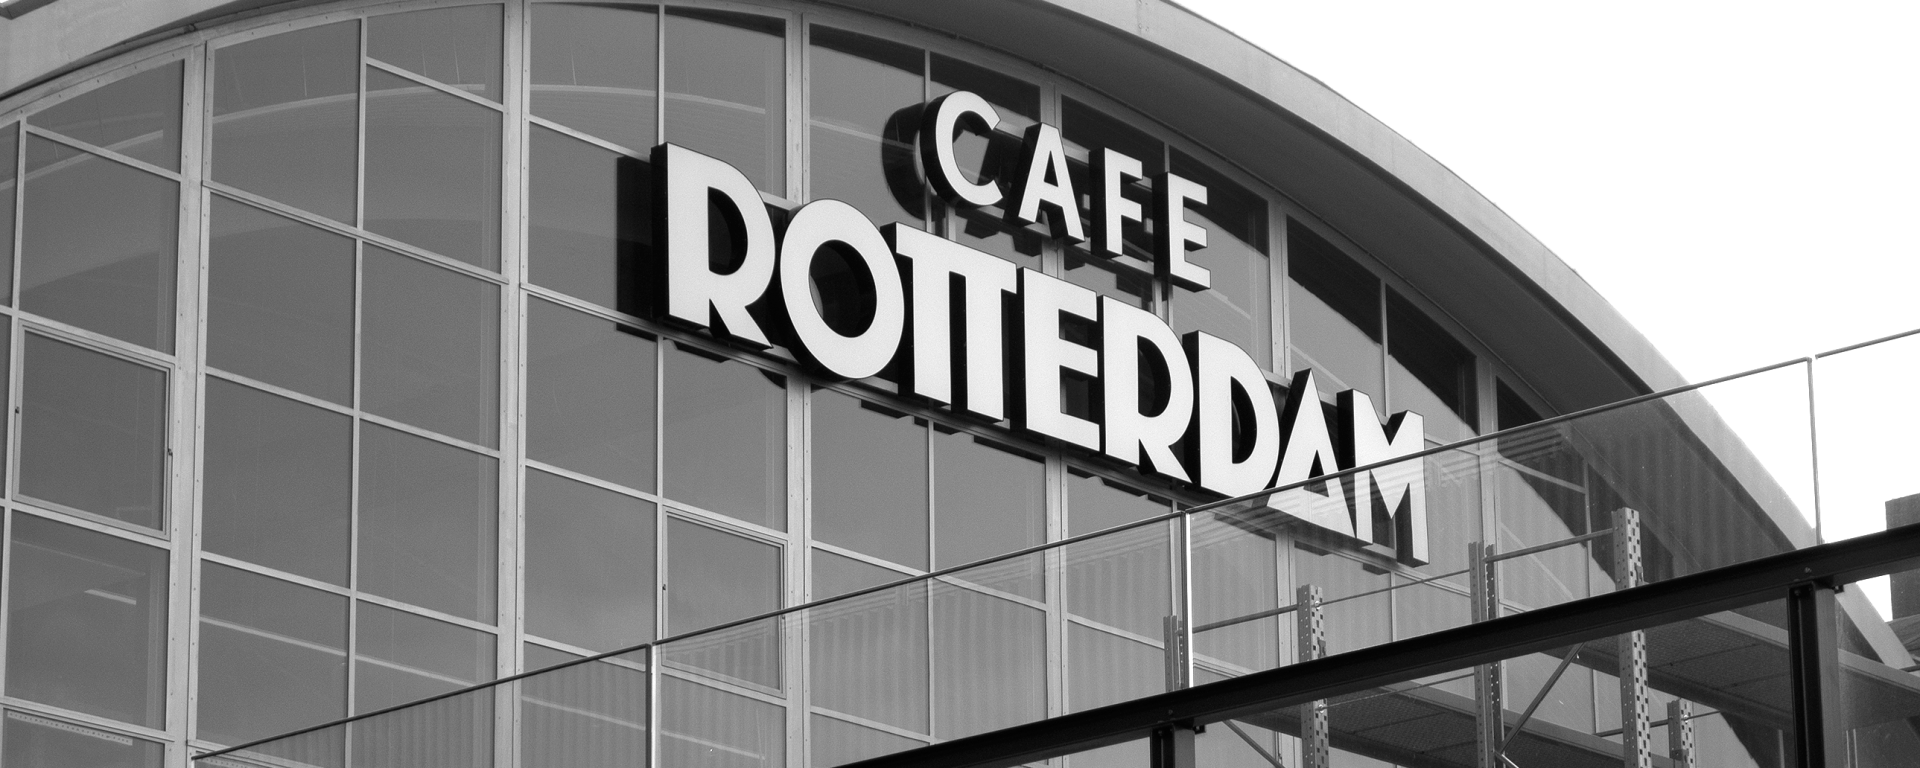 monochrome monday cafe rotterdam